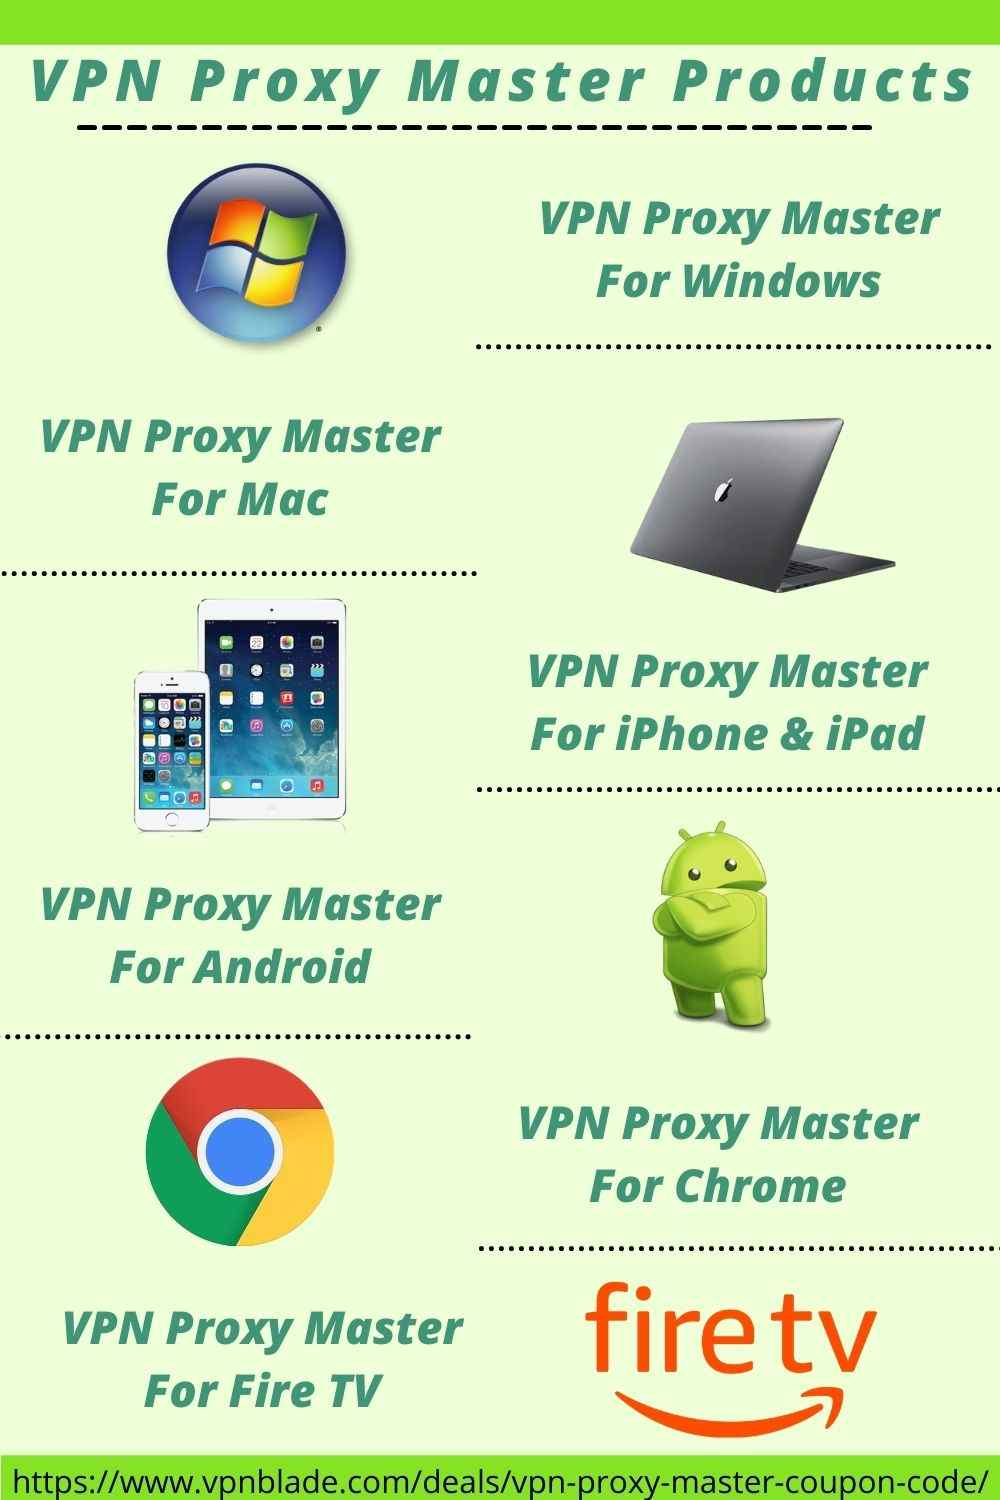 VPN Proxy Master Products Coupon Code